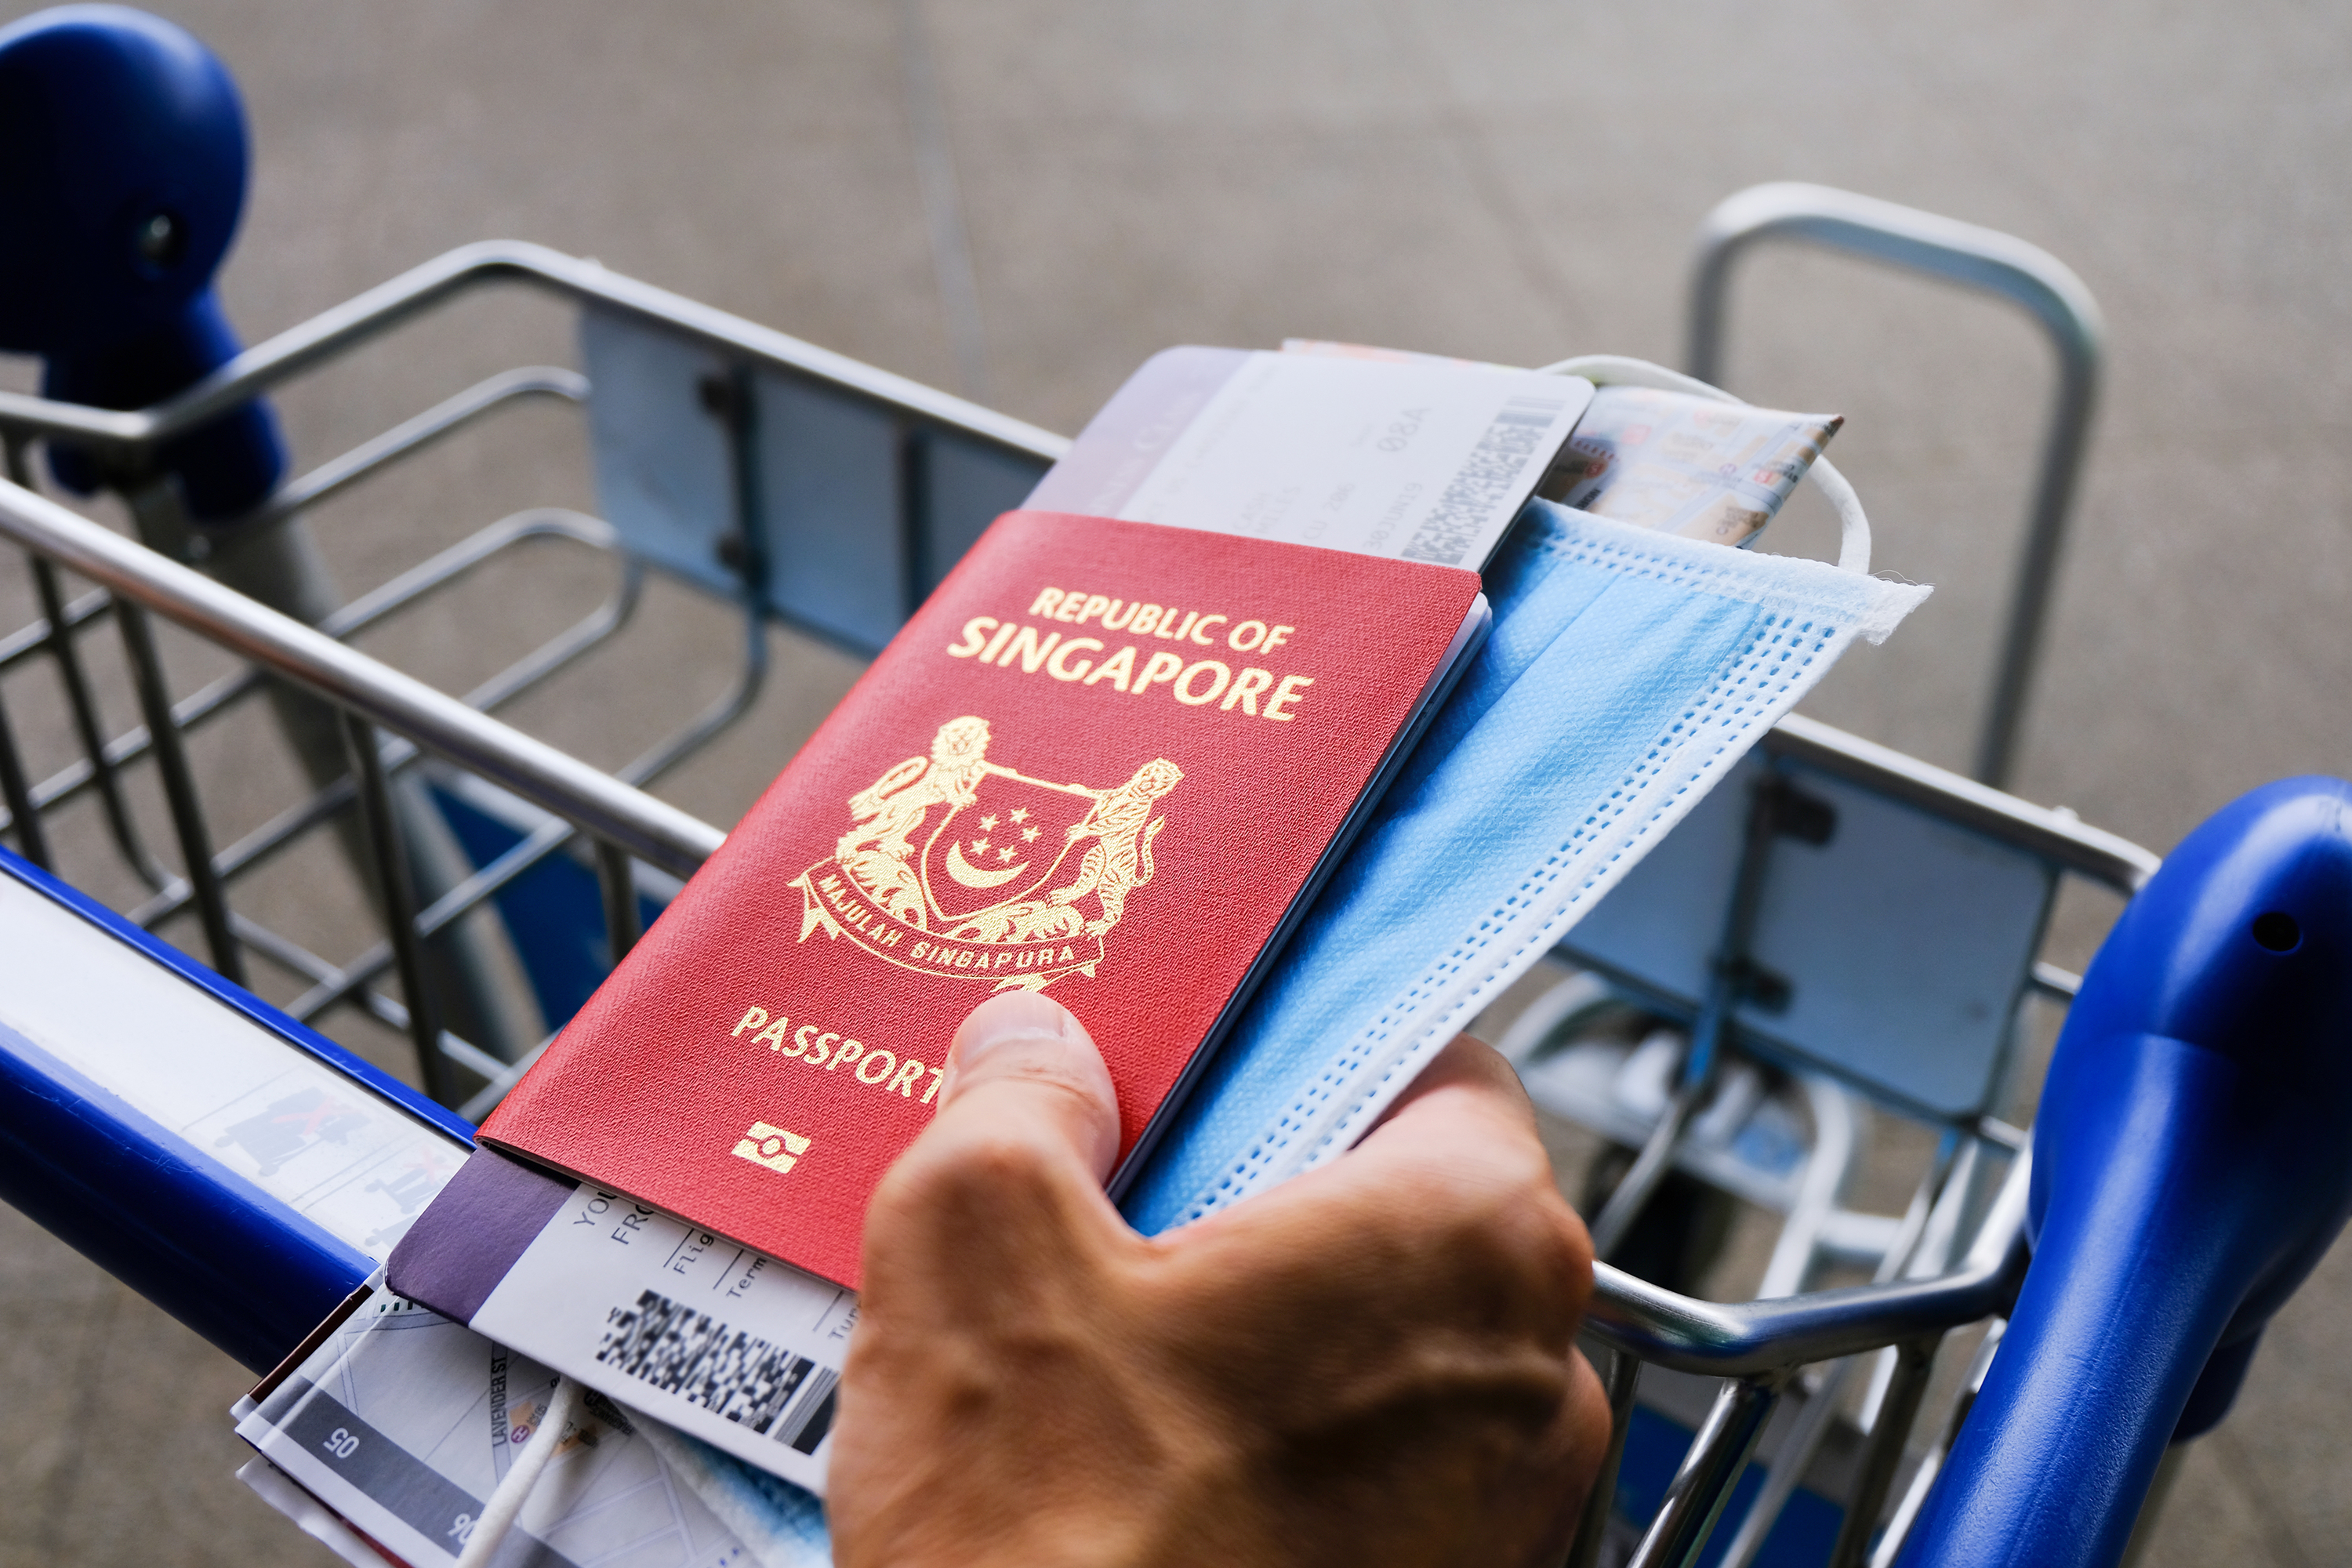 Singapore's passport remains the second strongest in the world